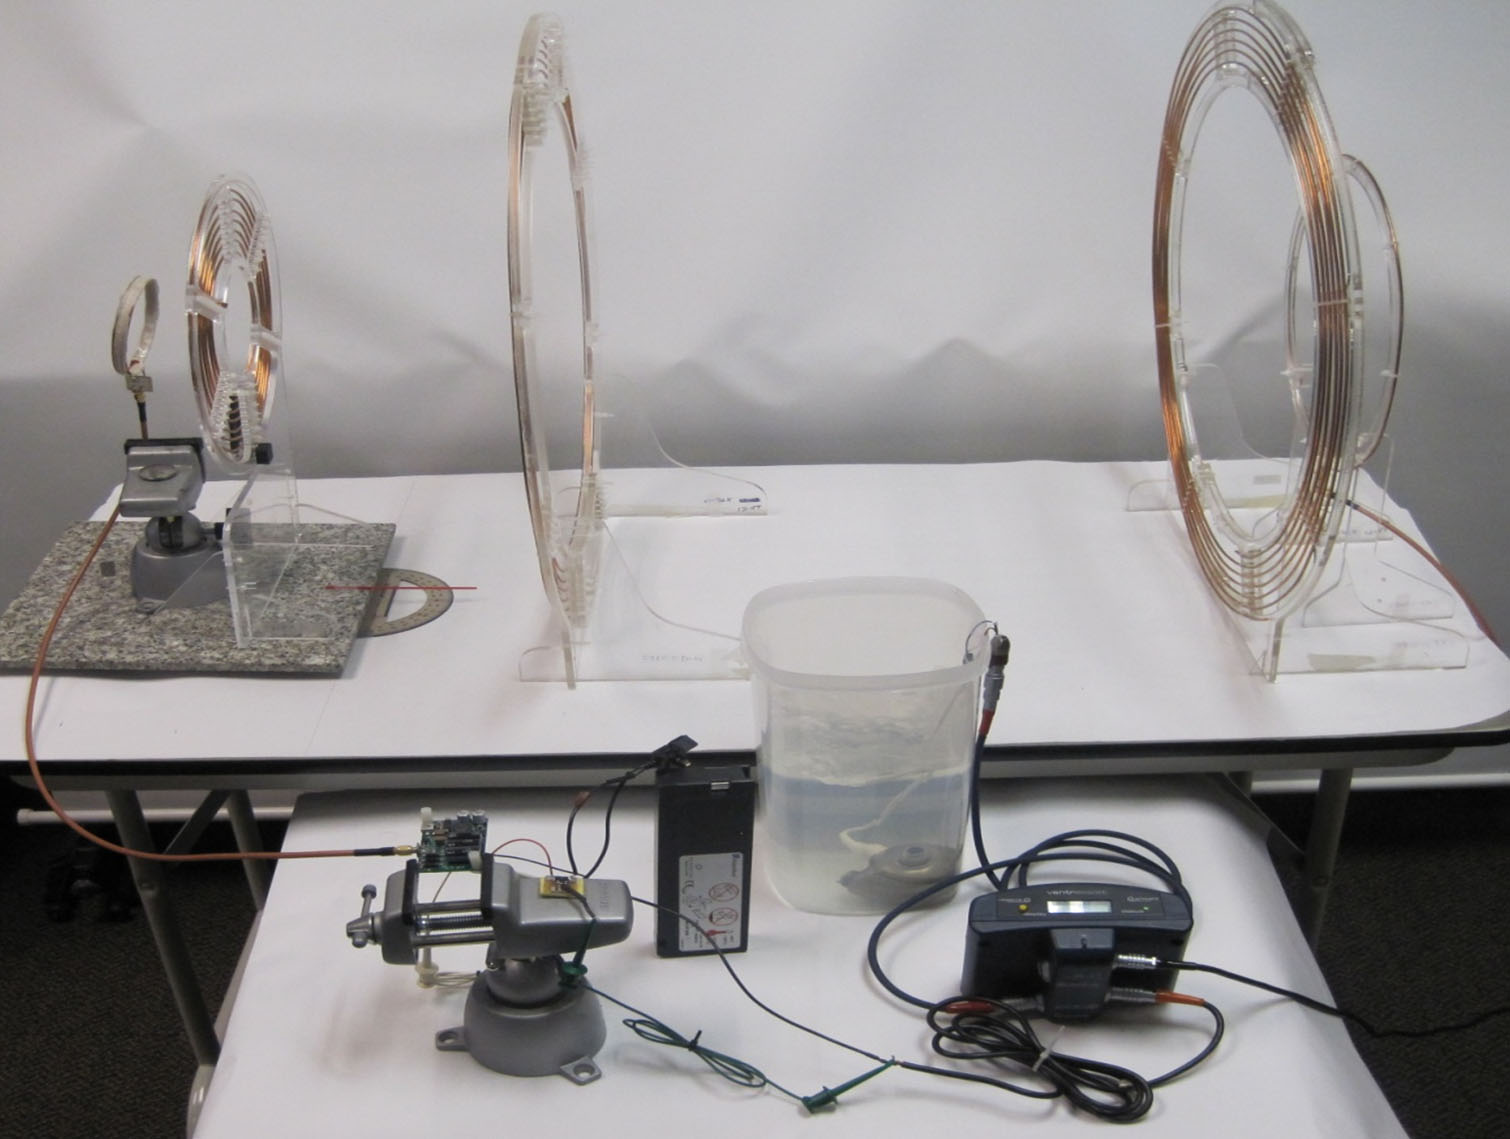 The experimental setup has a large transmission coil, at the right, connected to the building's electricity. At the left is the receiving coil, and near it is a smaller coil connected to a commercial heart pump sitting in a jar of fluid.